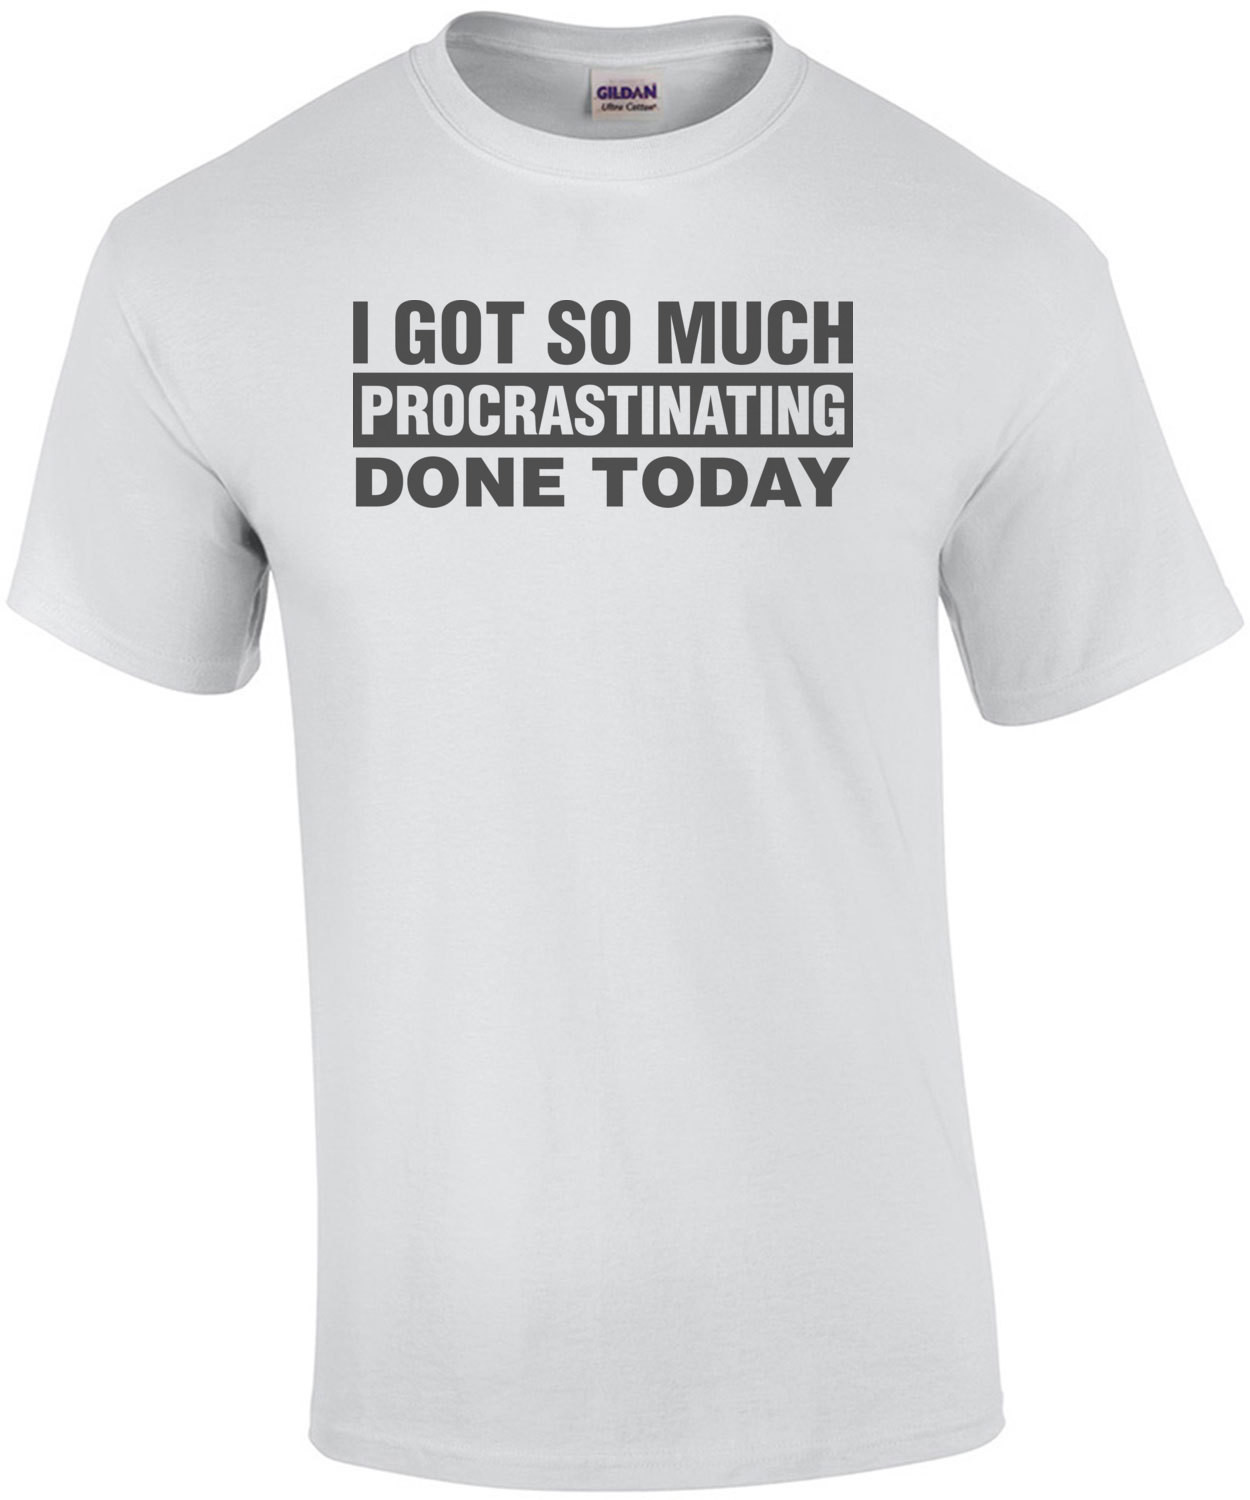 I Got So Much Procrastinating Done Today Tee